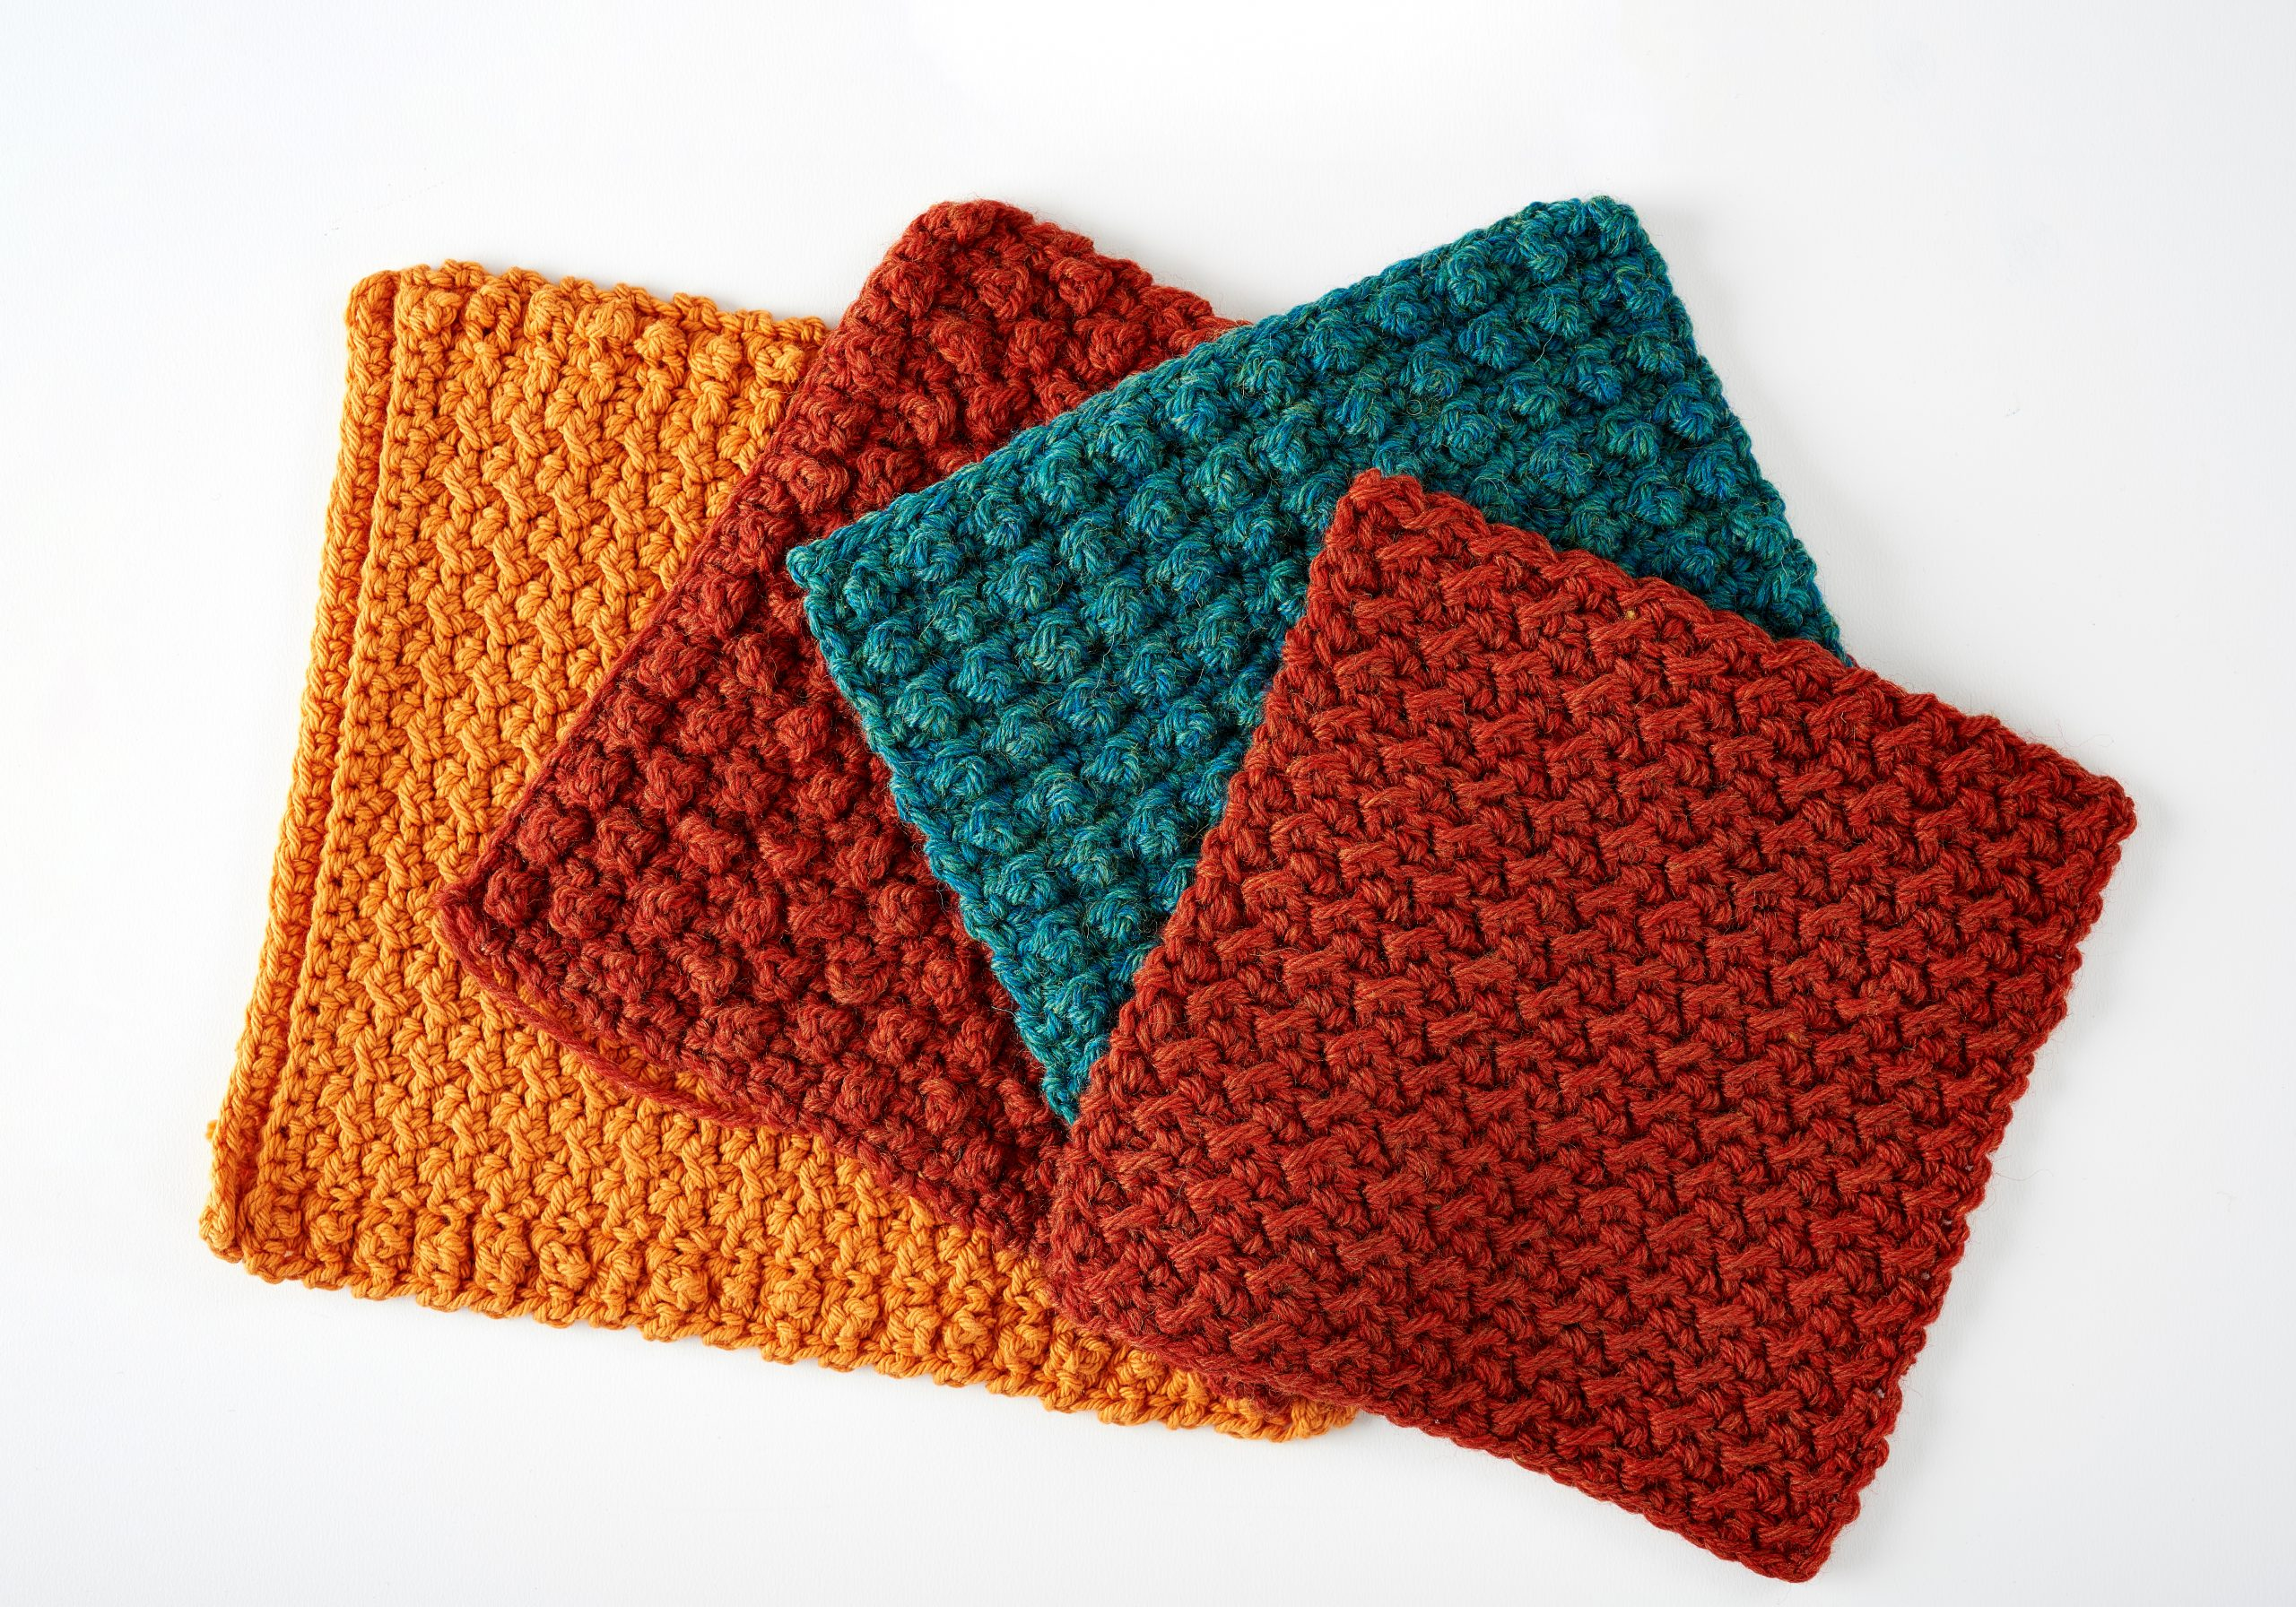 The Best Crochet Stitches For Chunky Yarn